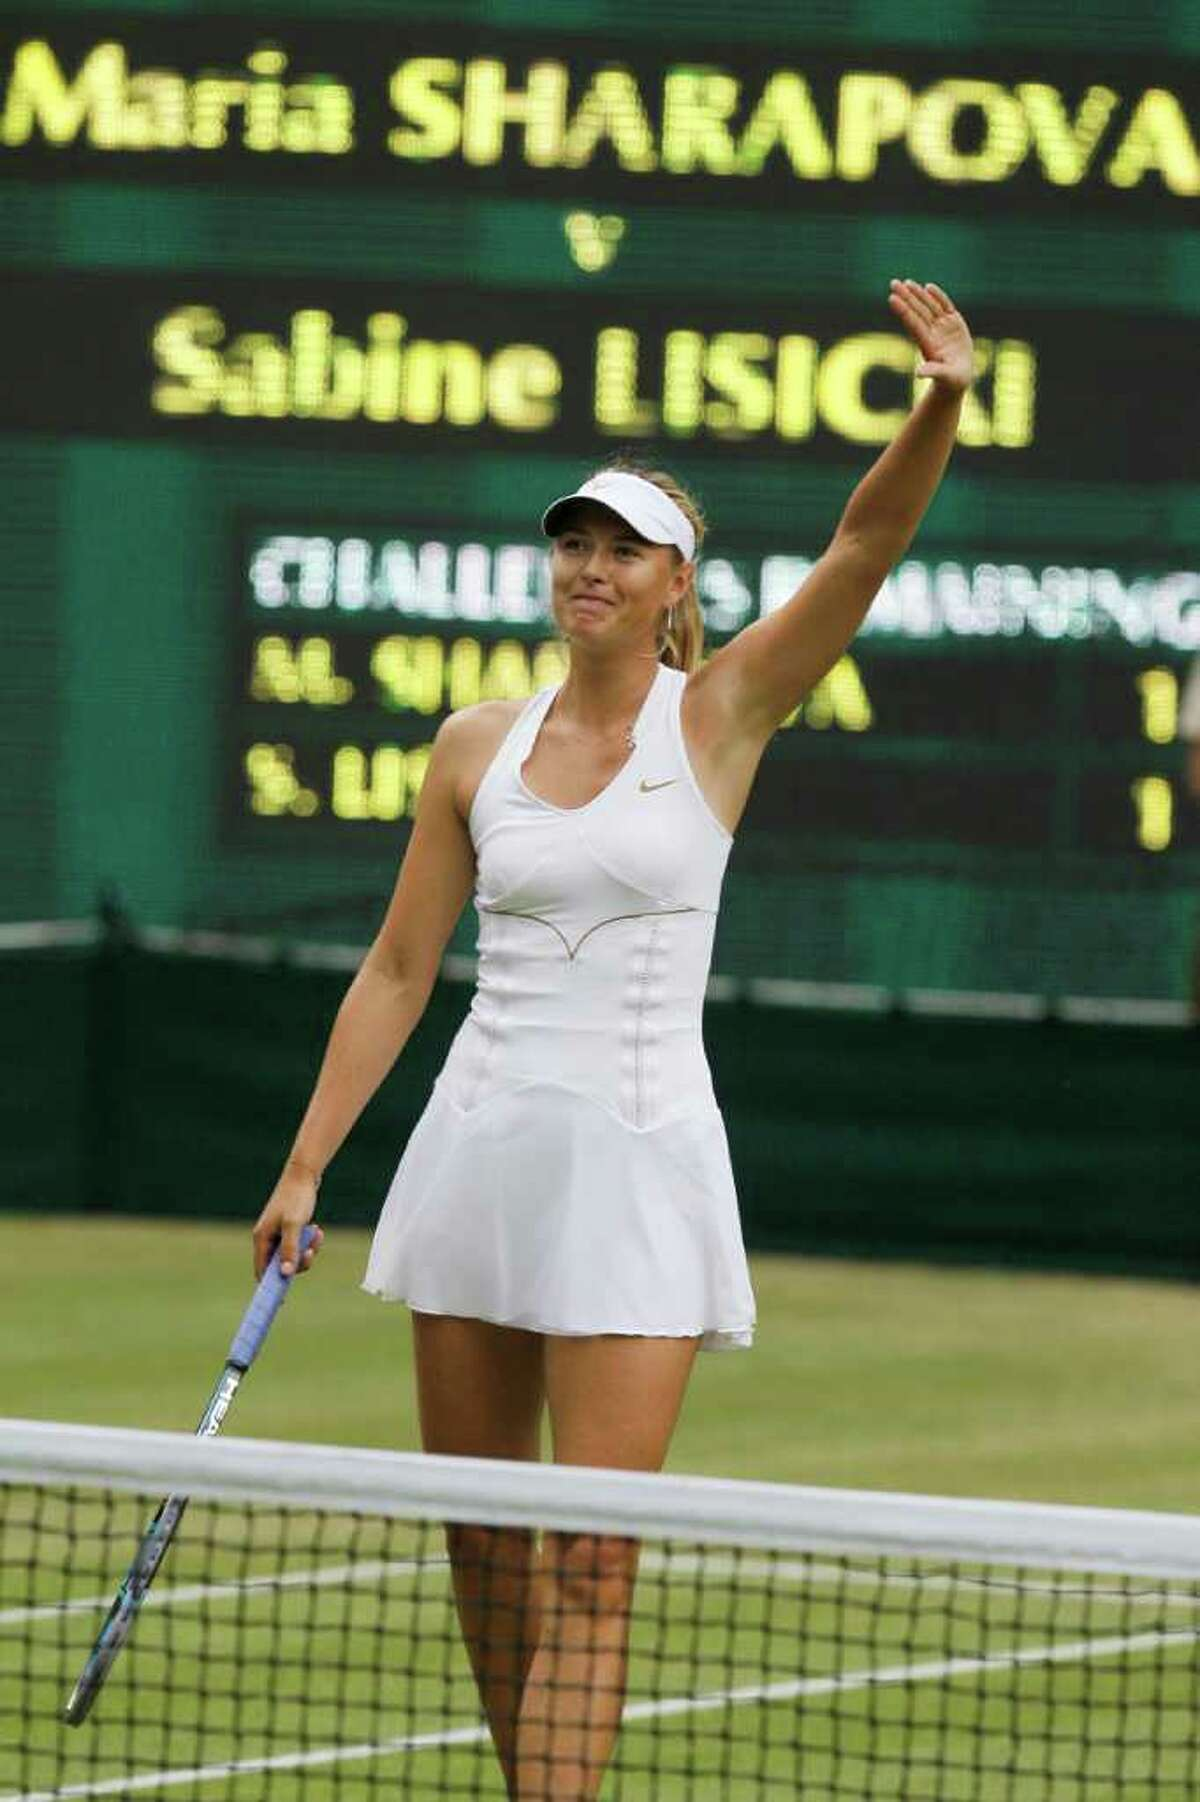 Russia's Maria Sharapova celebrates defeating Germany's Sabine Lisicki in their semifinal match at the All England Lawn Tennis Championships at Wimbledon, Thursday, June 30, 2011.